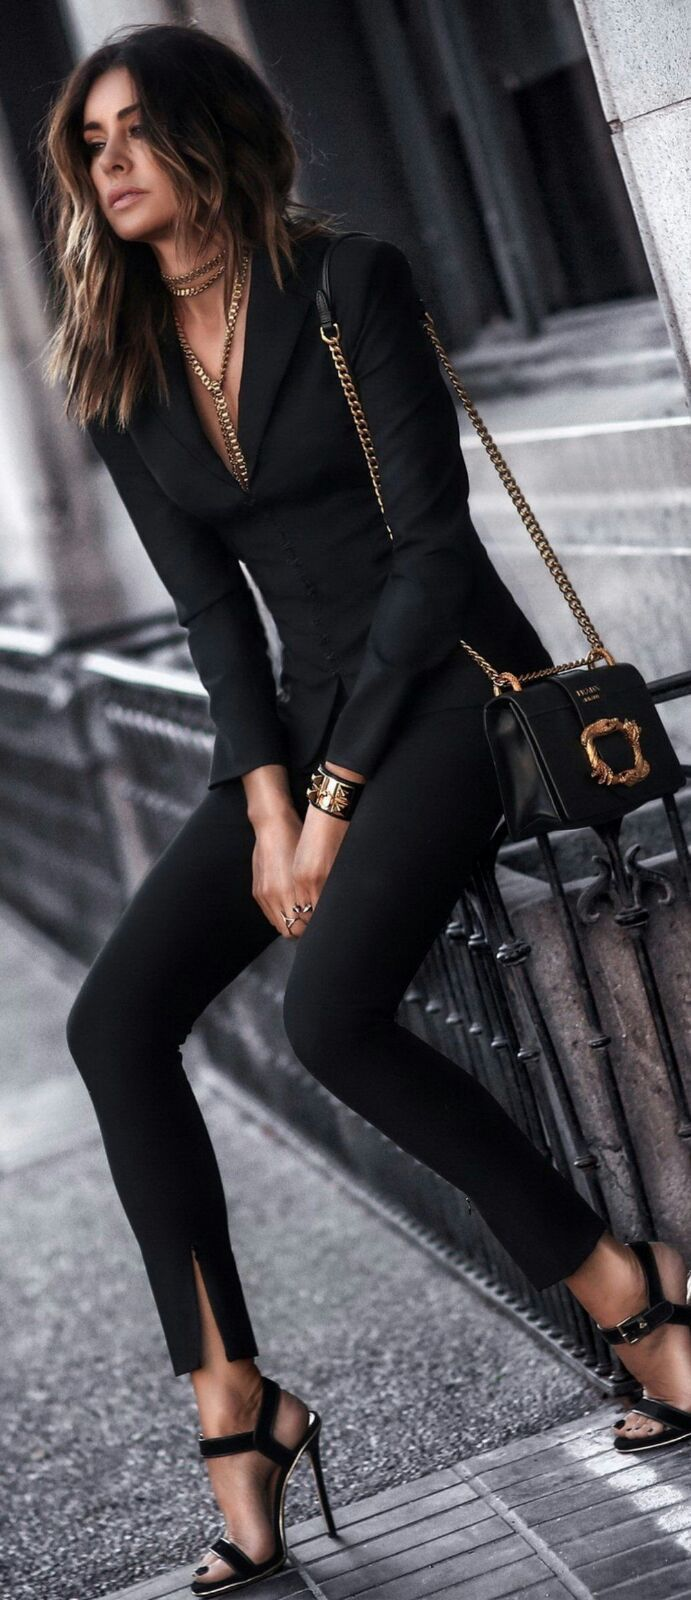 Dress Code: 30+ Clever Ways To Get Dressed To The Office | Nude, Black and  Work outfits